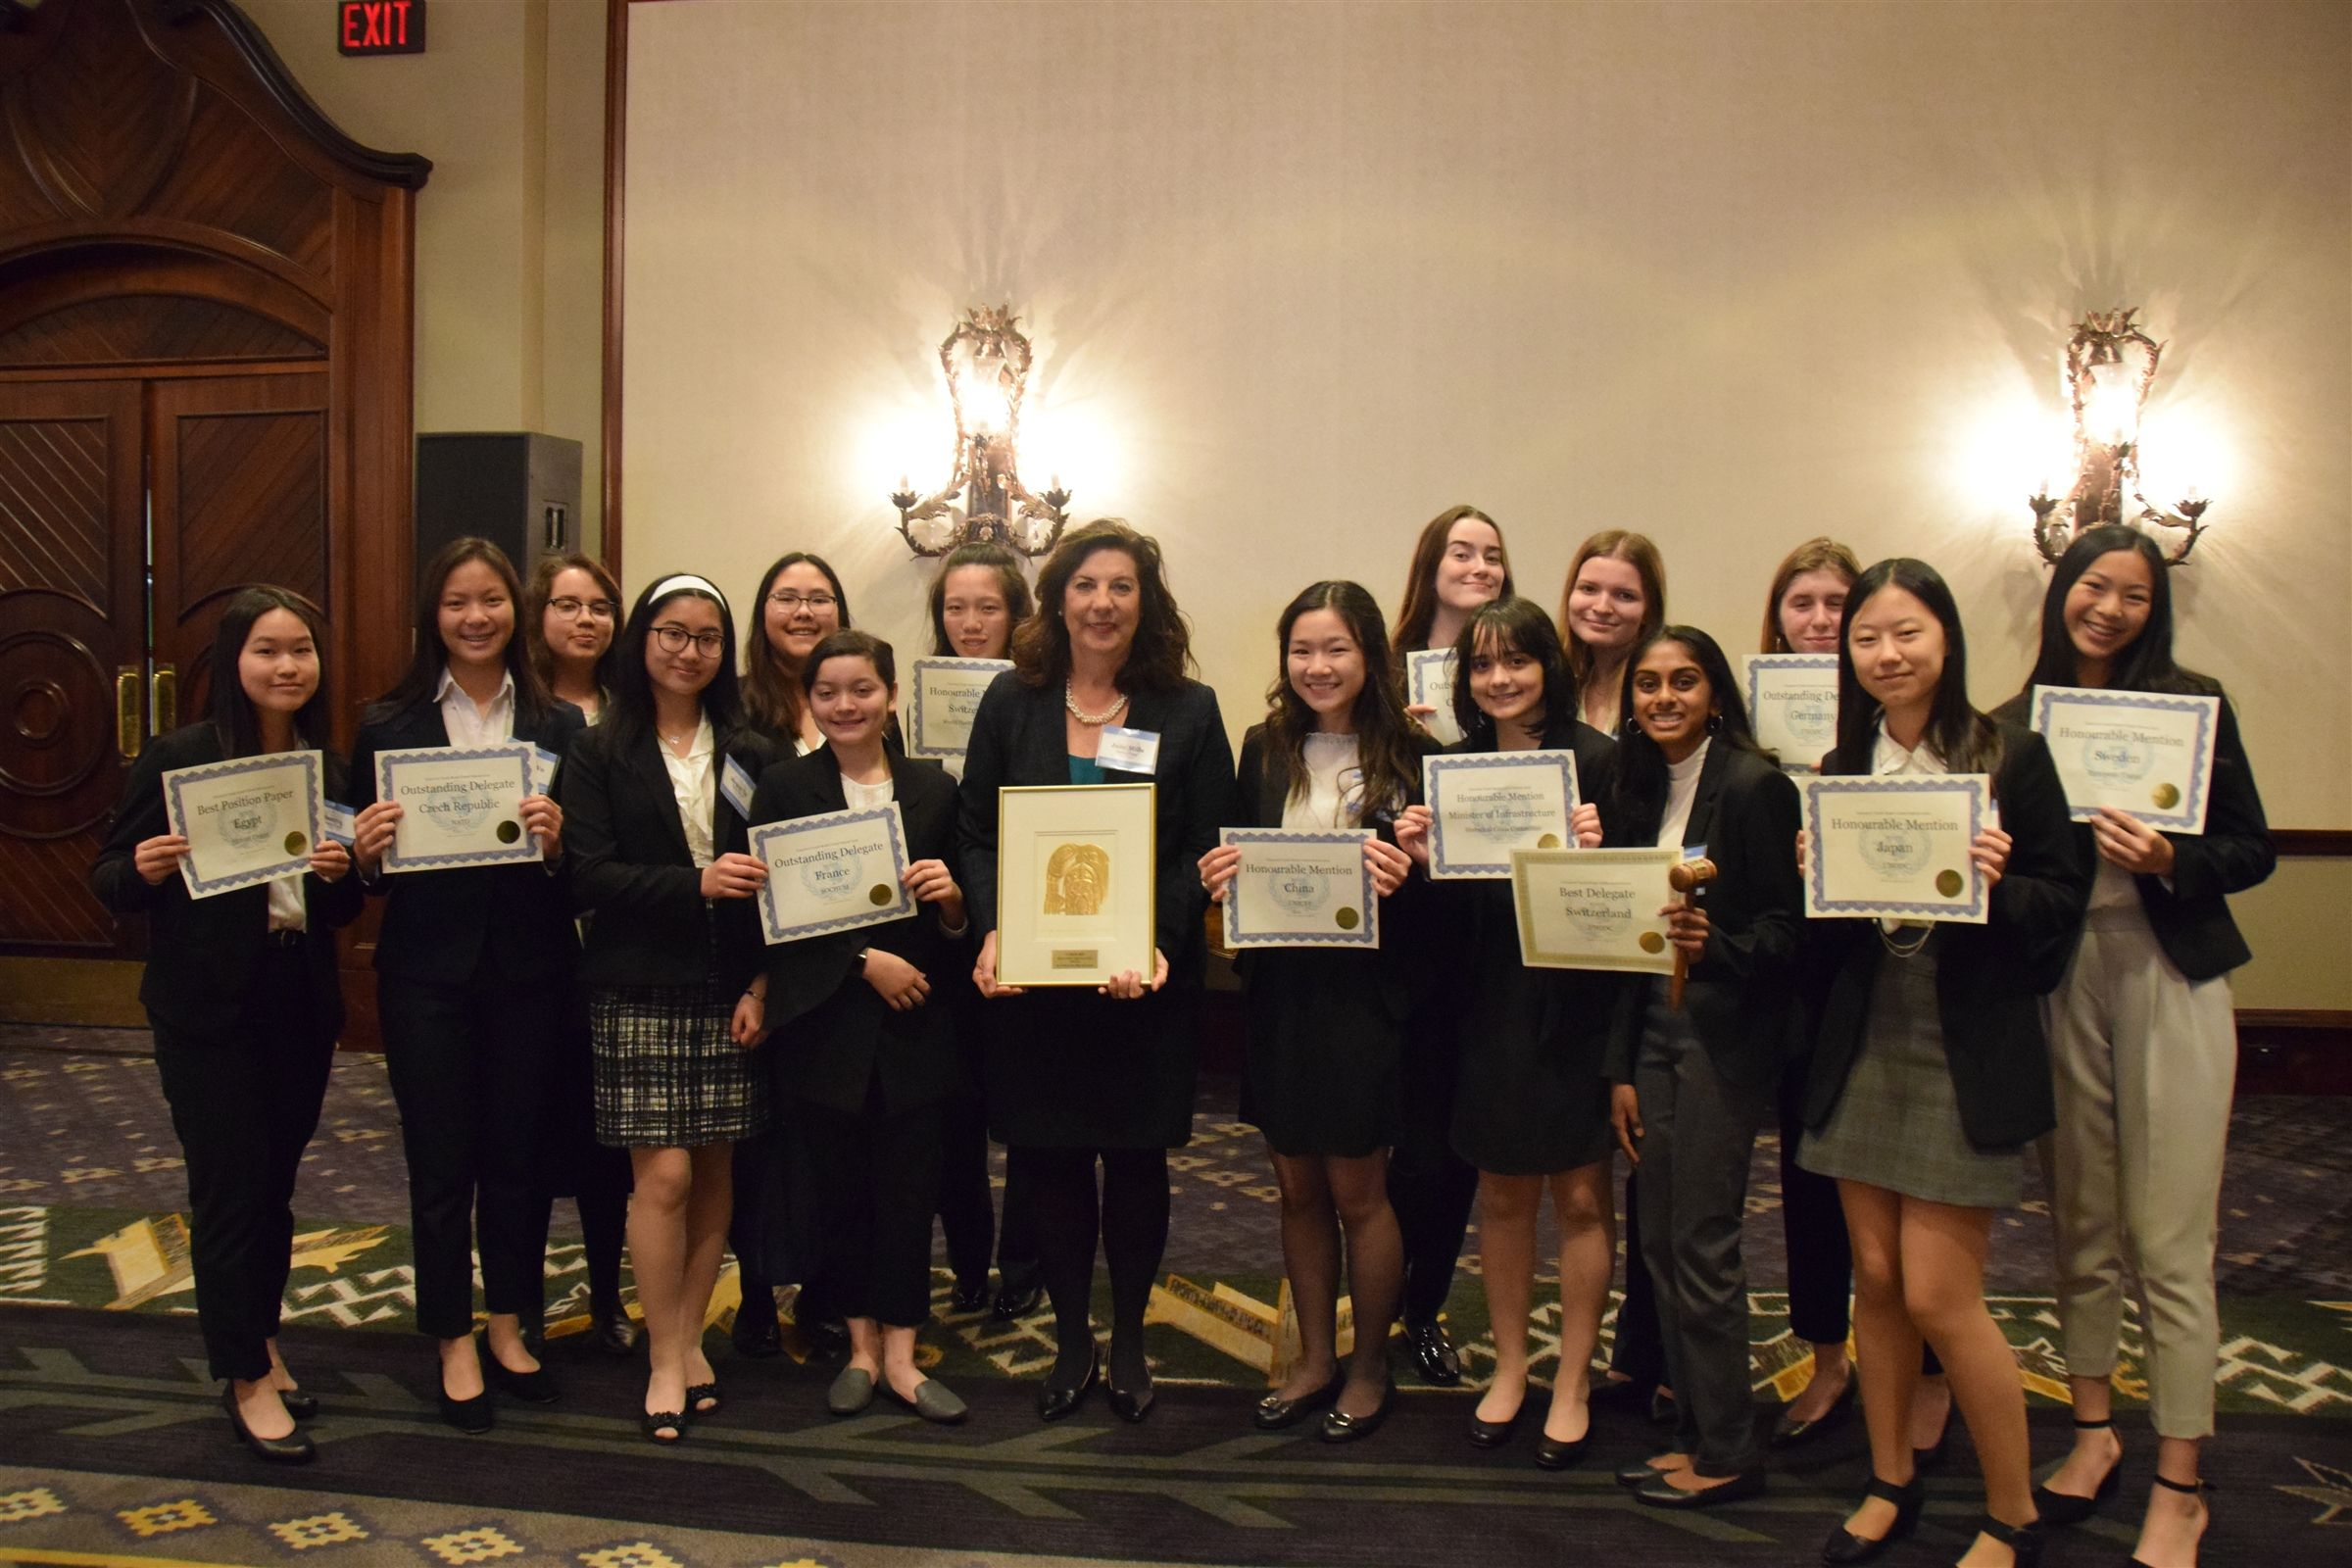 LFA won 15 individual awards and Best Large School Delegation